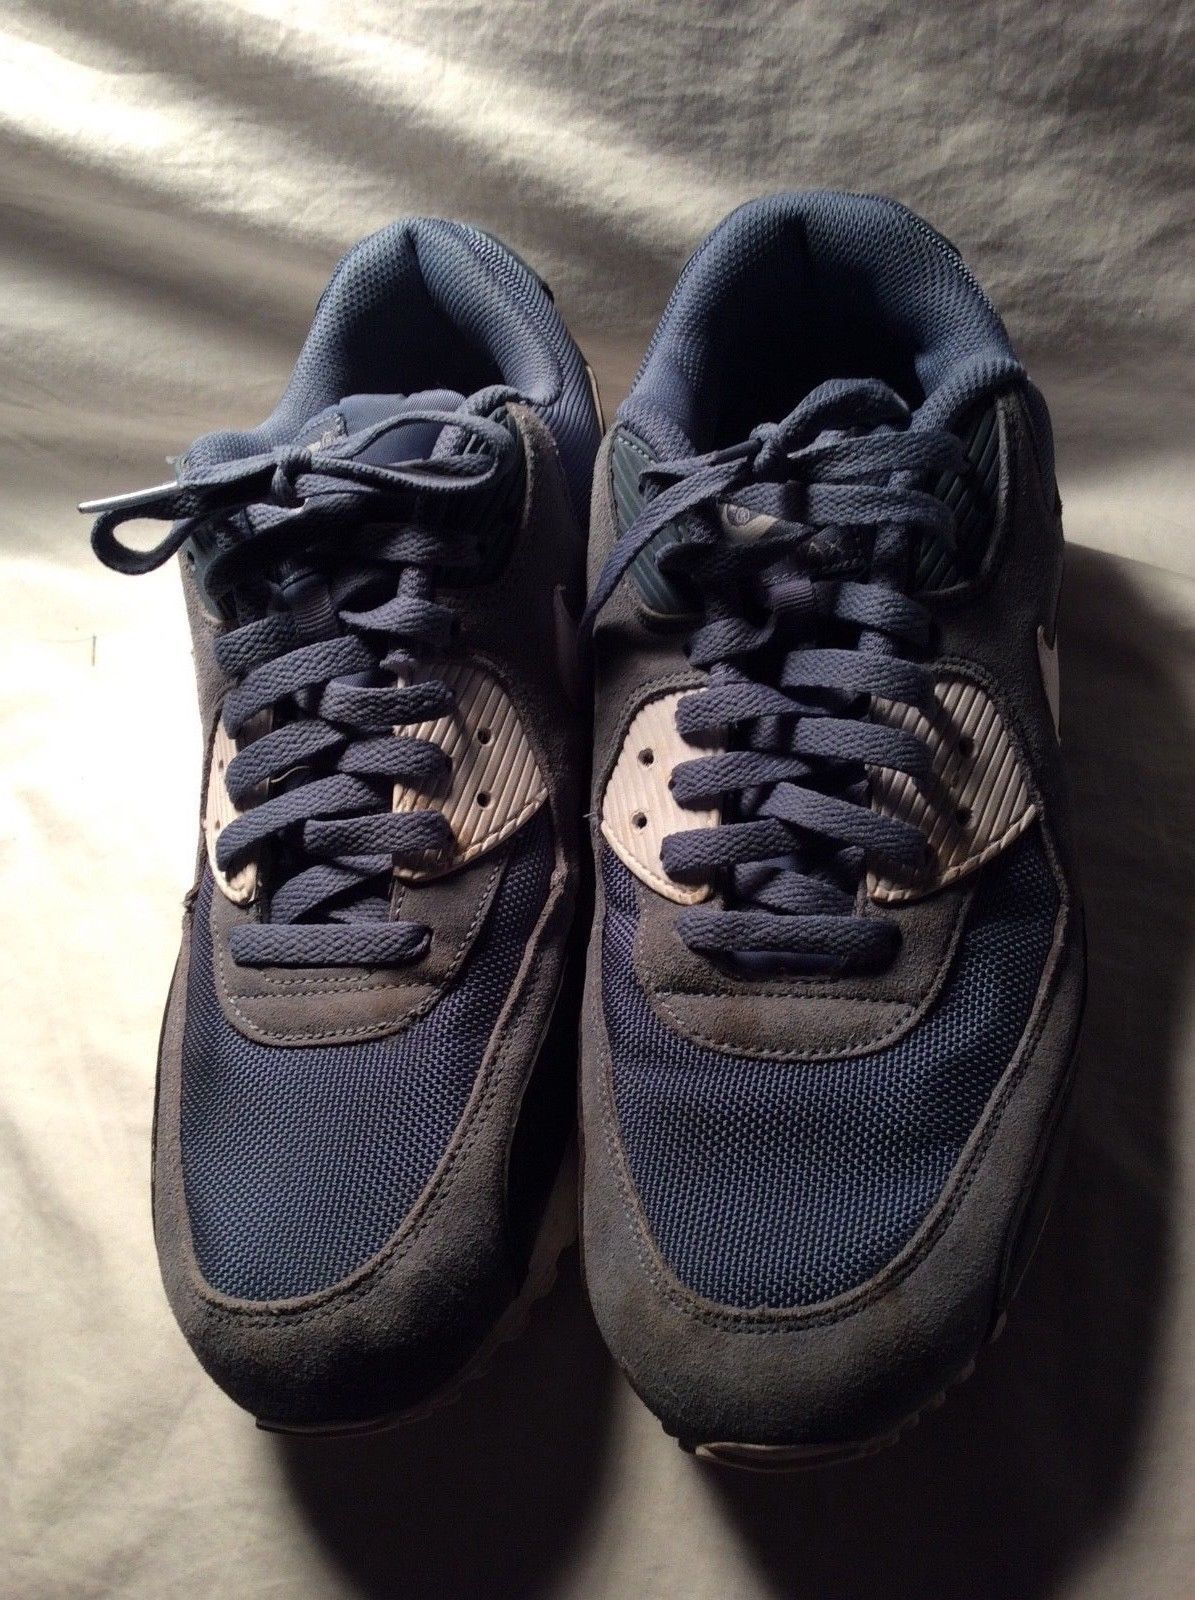 meet ca0bd 1725c Nike Air Max 90 Slate Ocean Fog Blue White and similar items